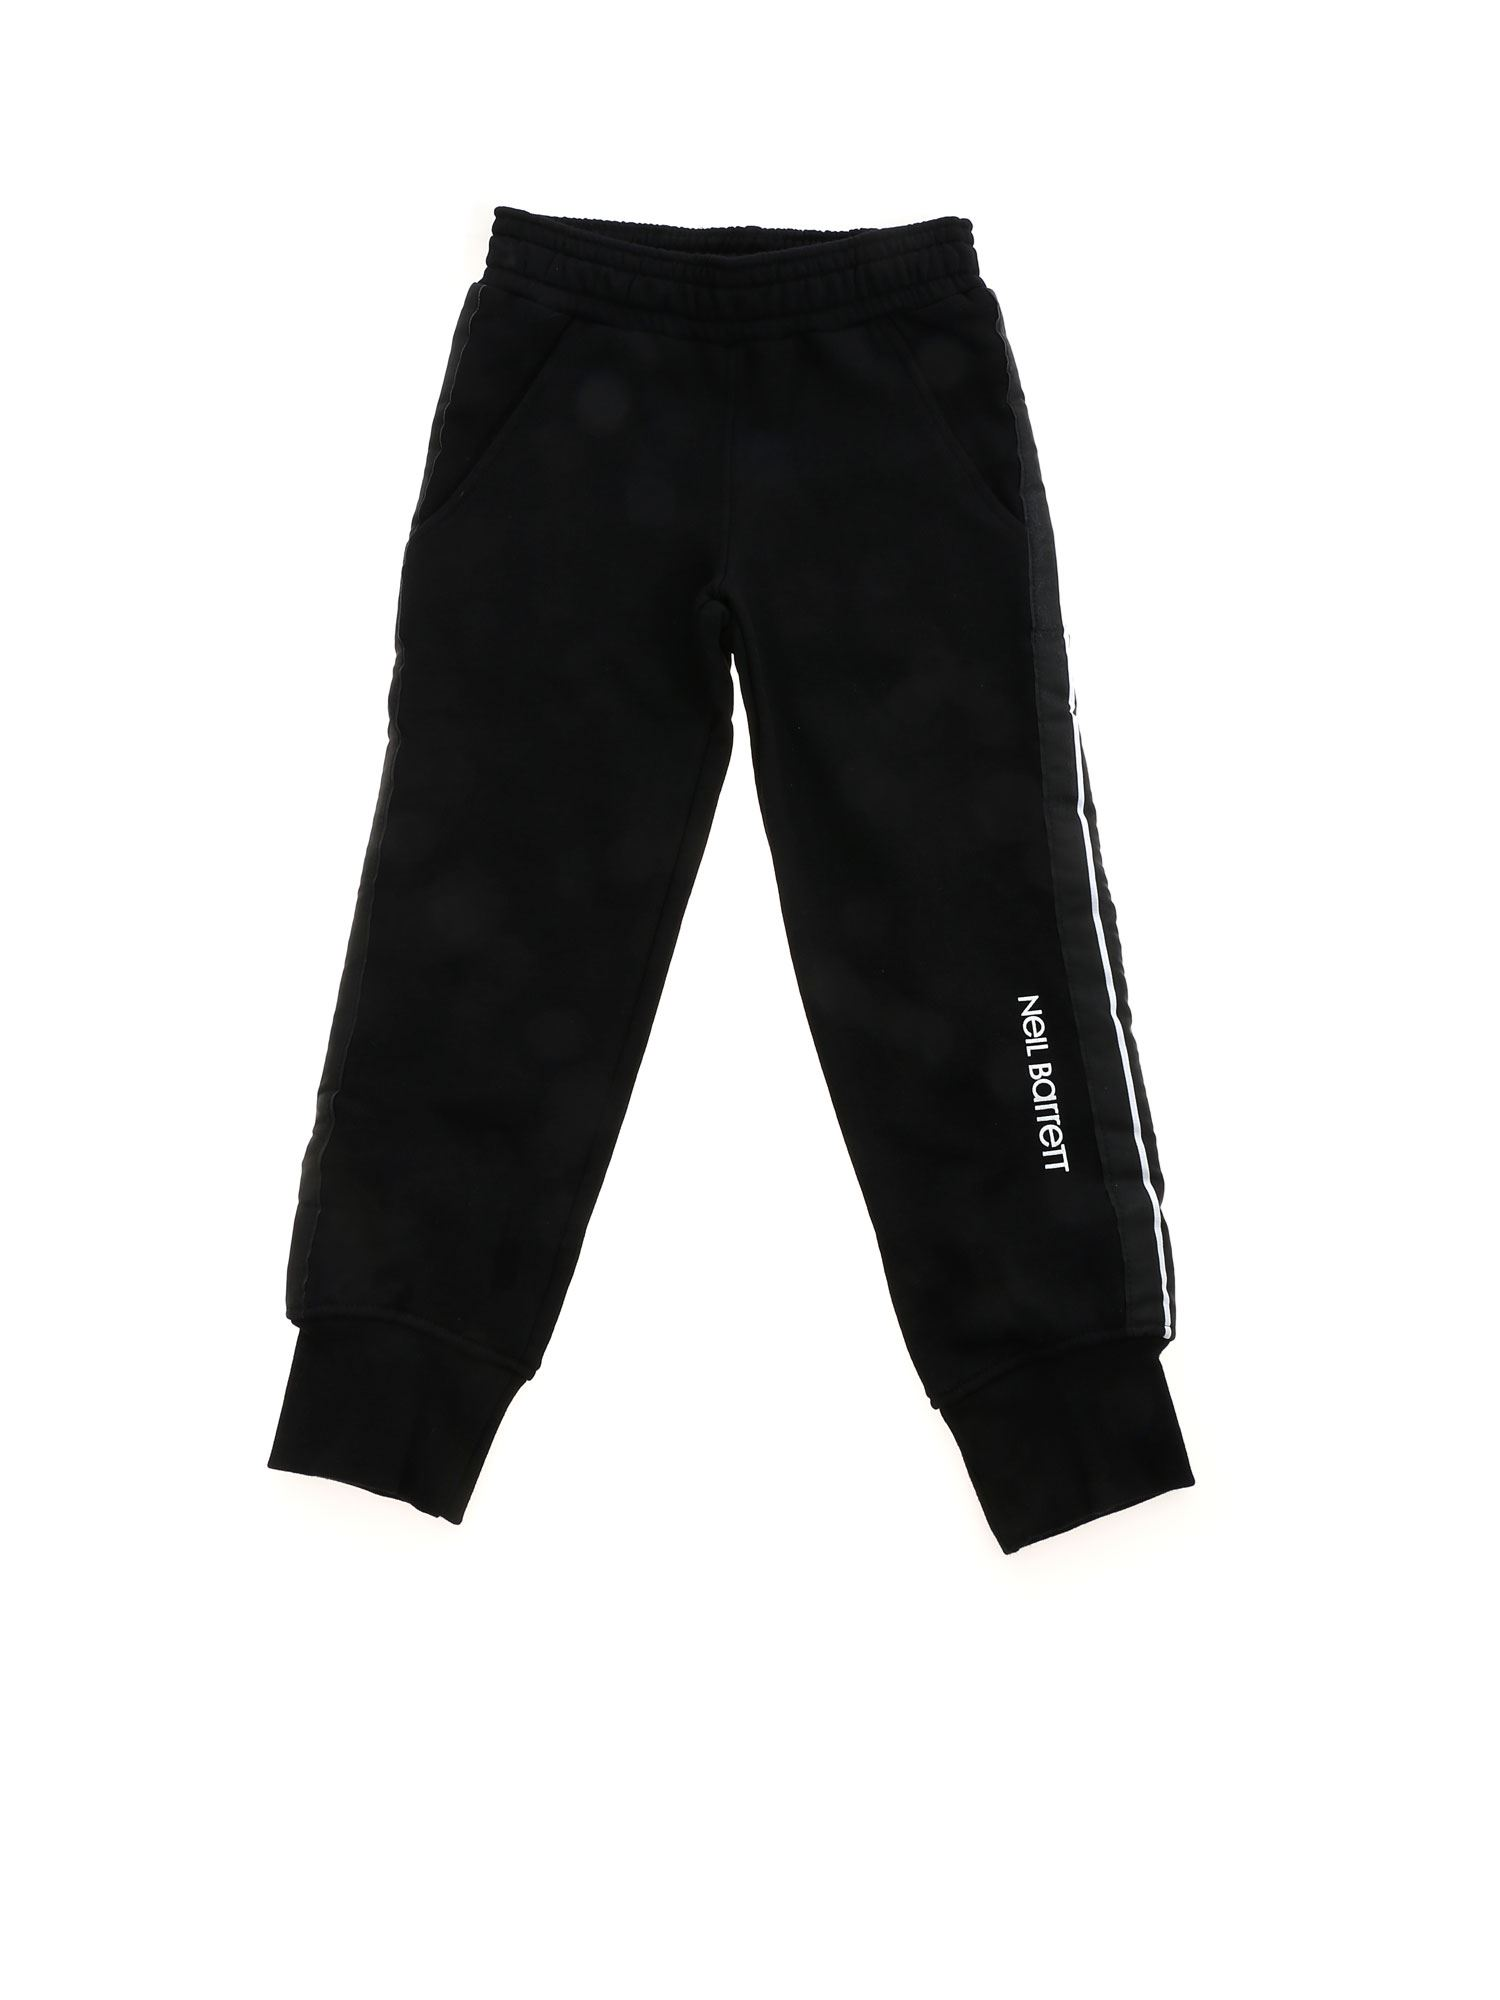 Neil Barrett STRIPED BAND PANTS IN BLACK